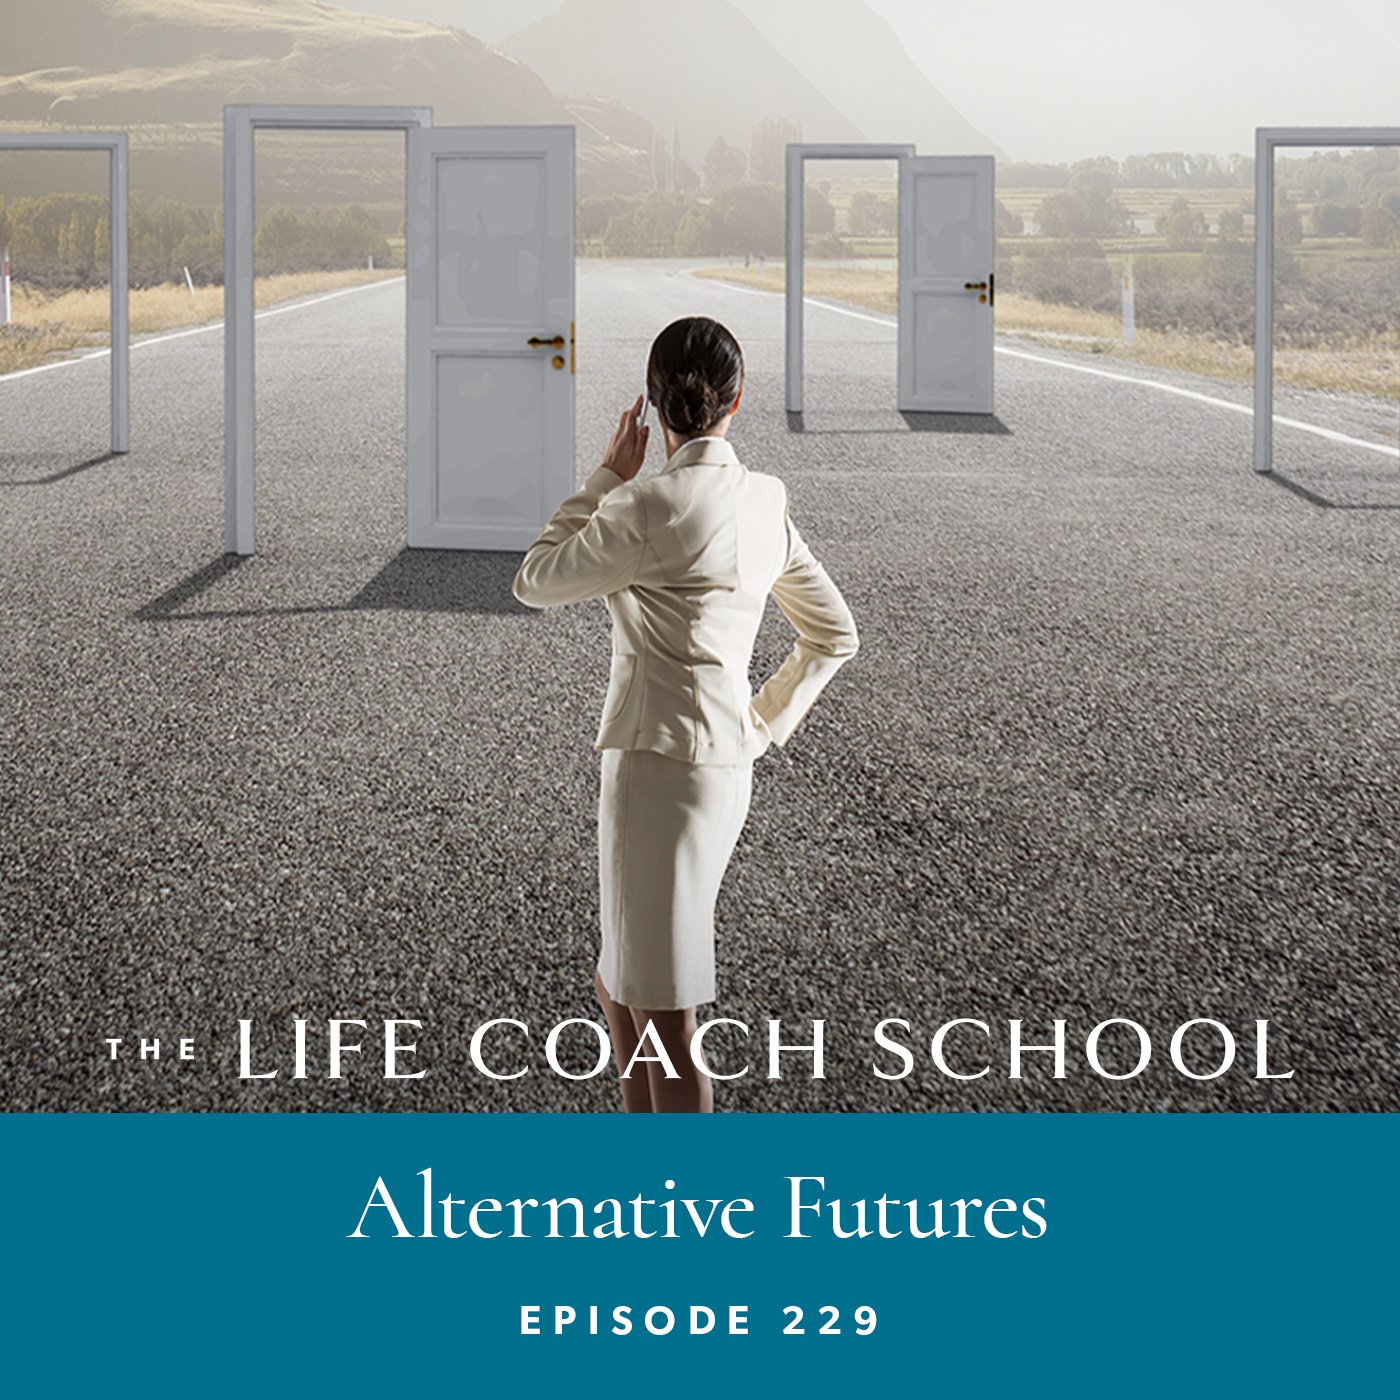 The Life Coach School Podcast with Brooke Castillo | Episode 229 | Alternative Futures